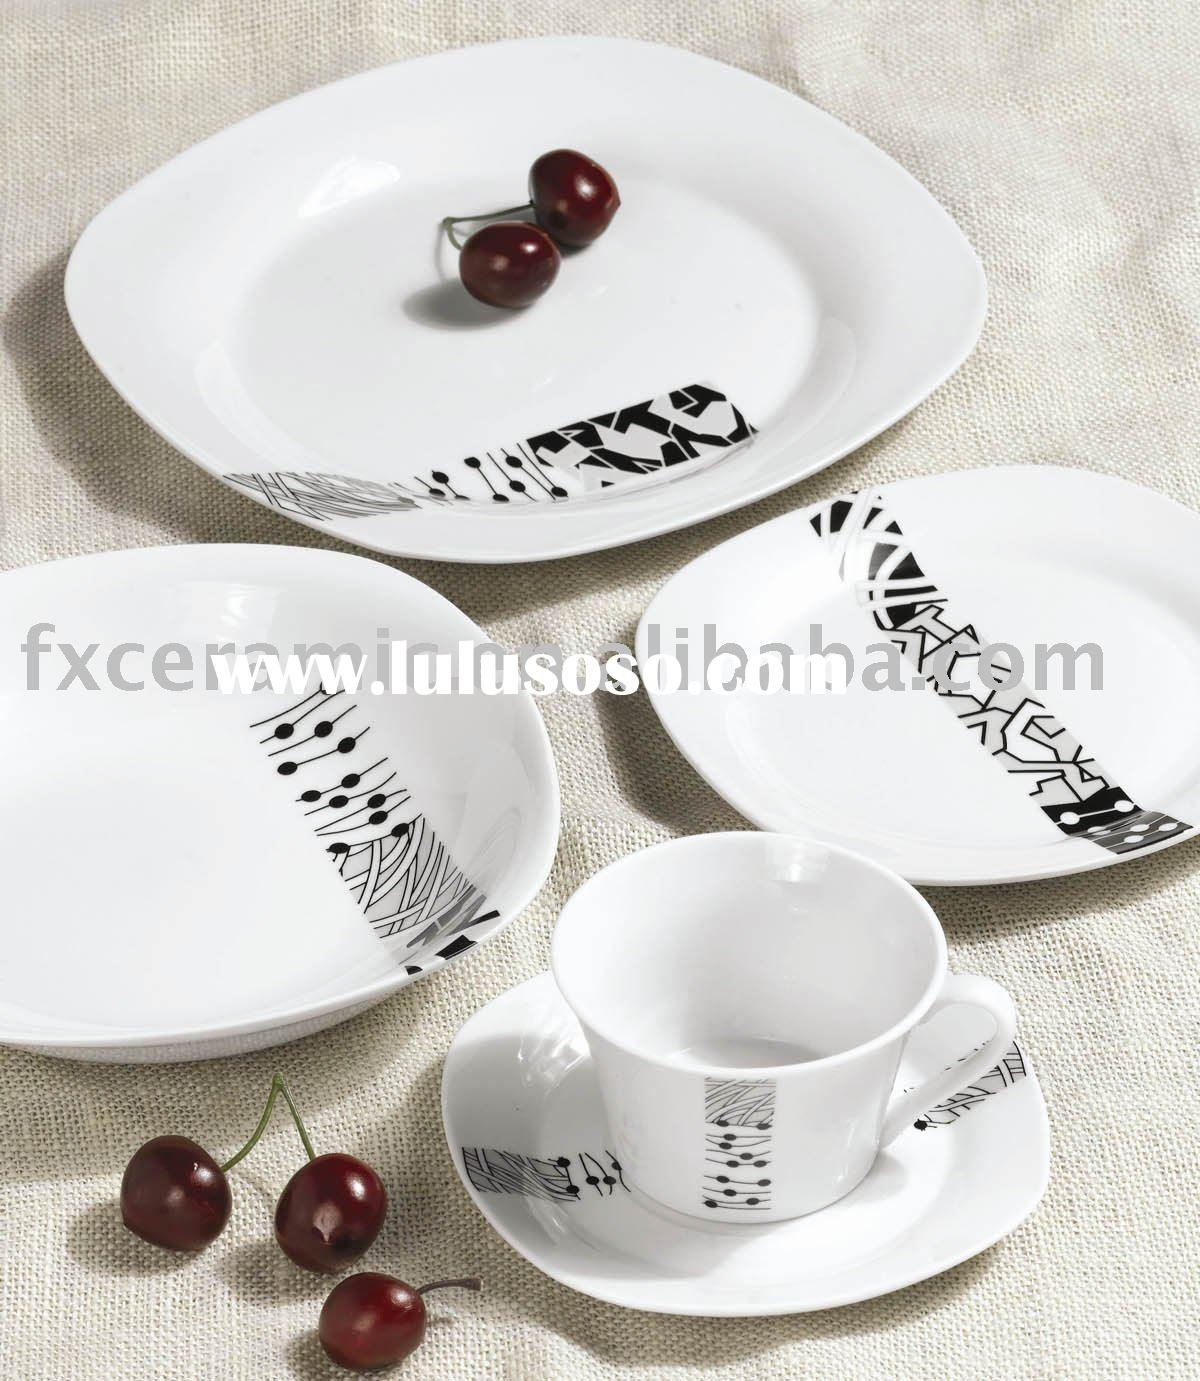 Porcelain 20pcs white dinner set ( plate, dish), customized size and logo is welcomed